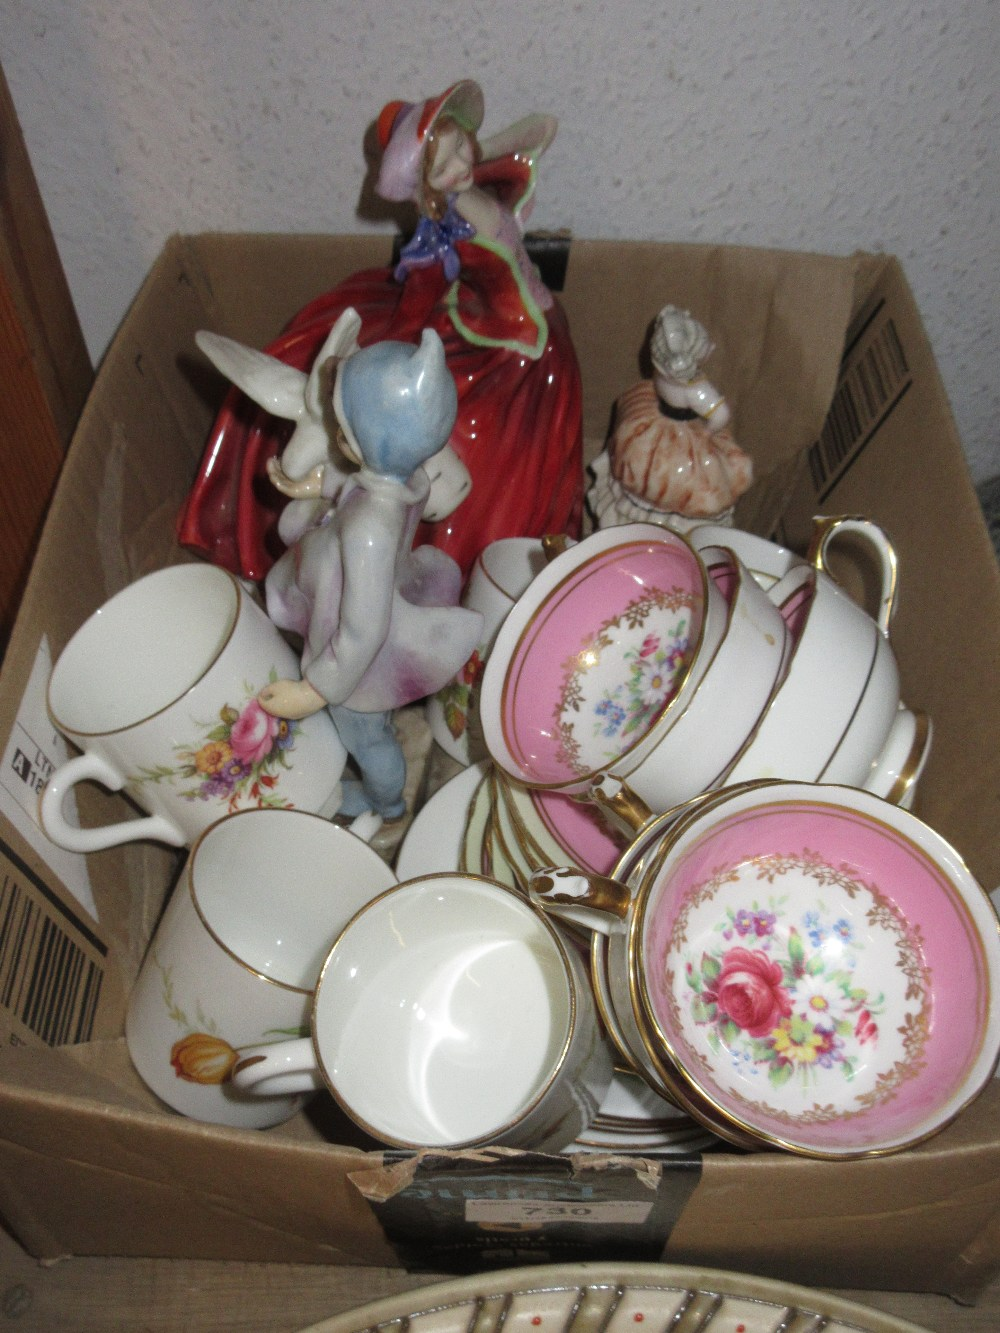 Royal Worcester figure ' Fantails ' together with a Royal Doulton figure ' Autumn Breezes ', small